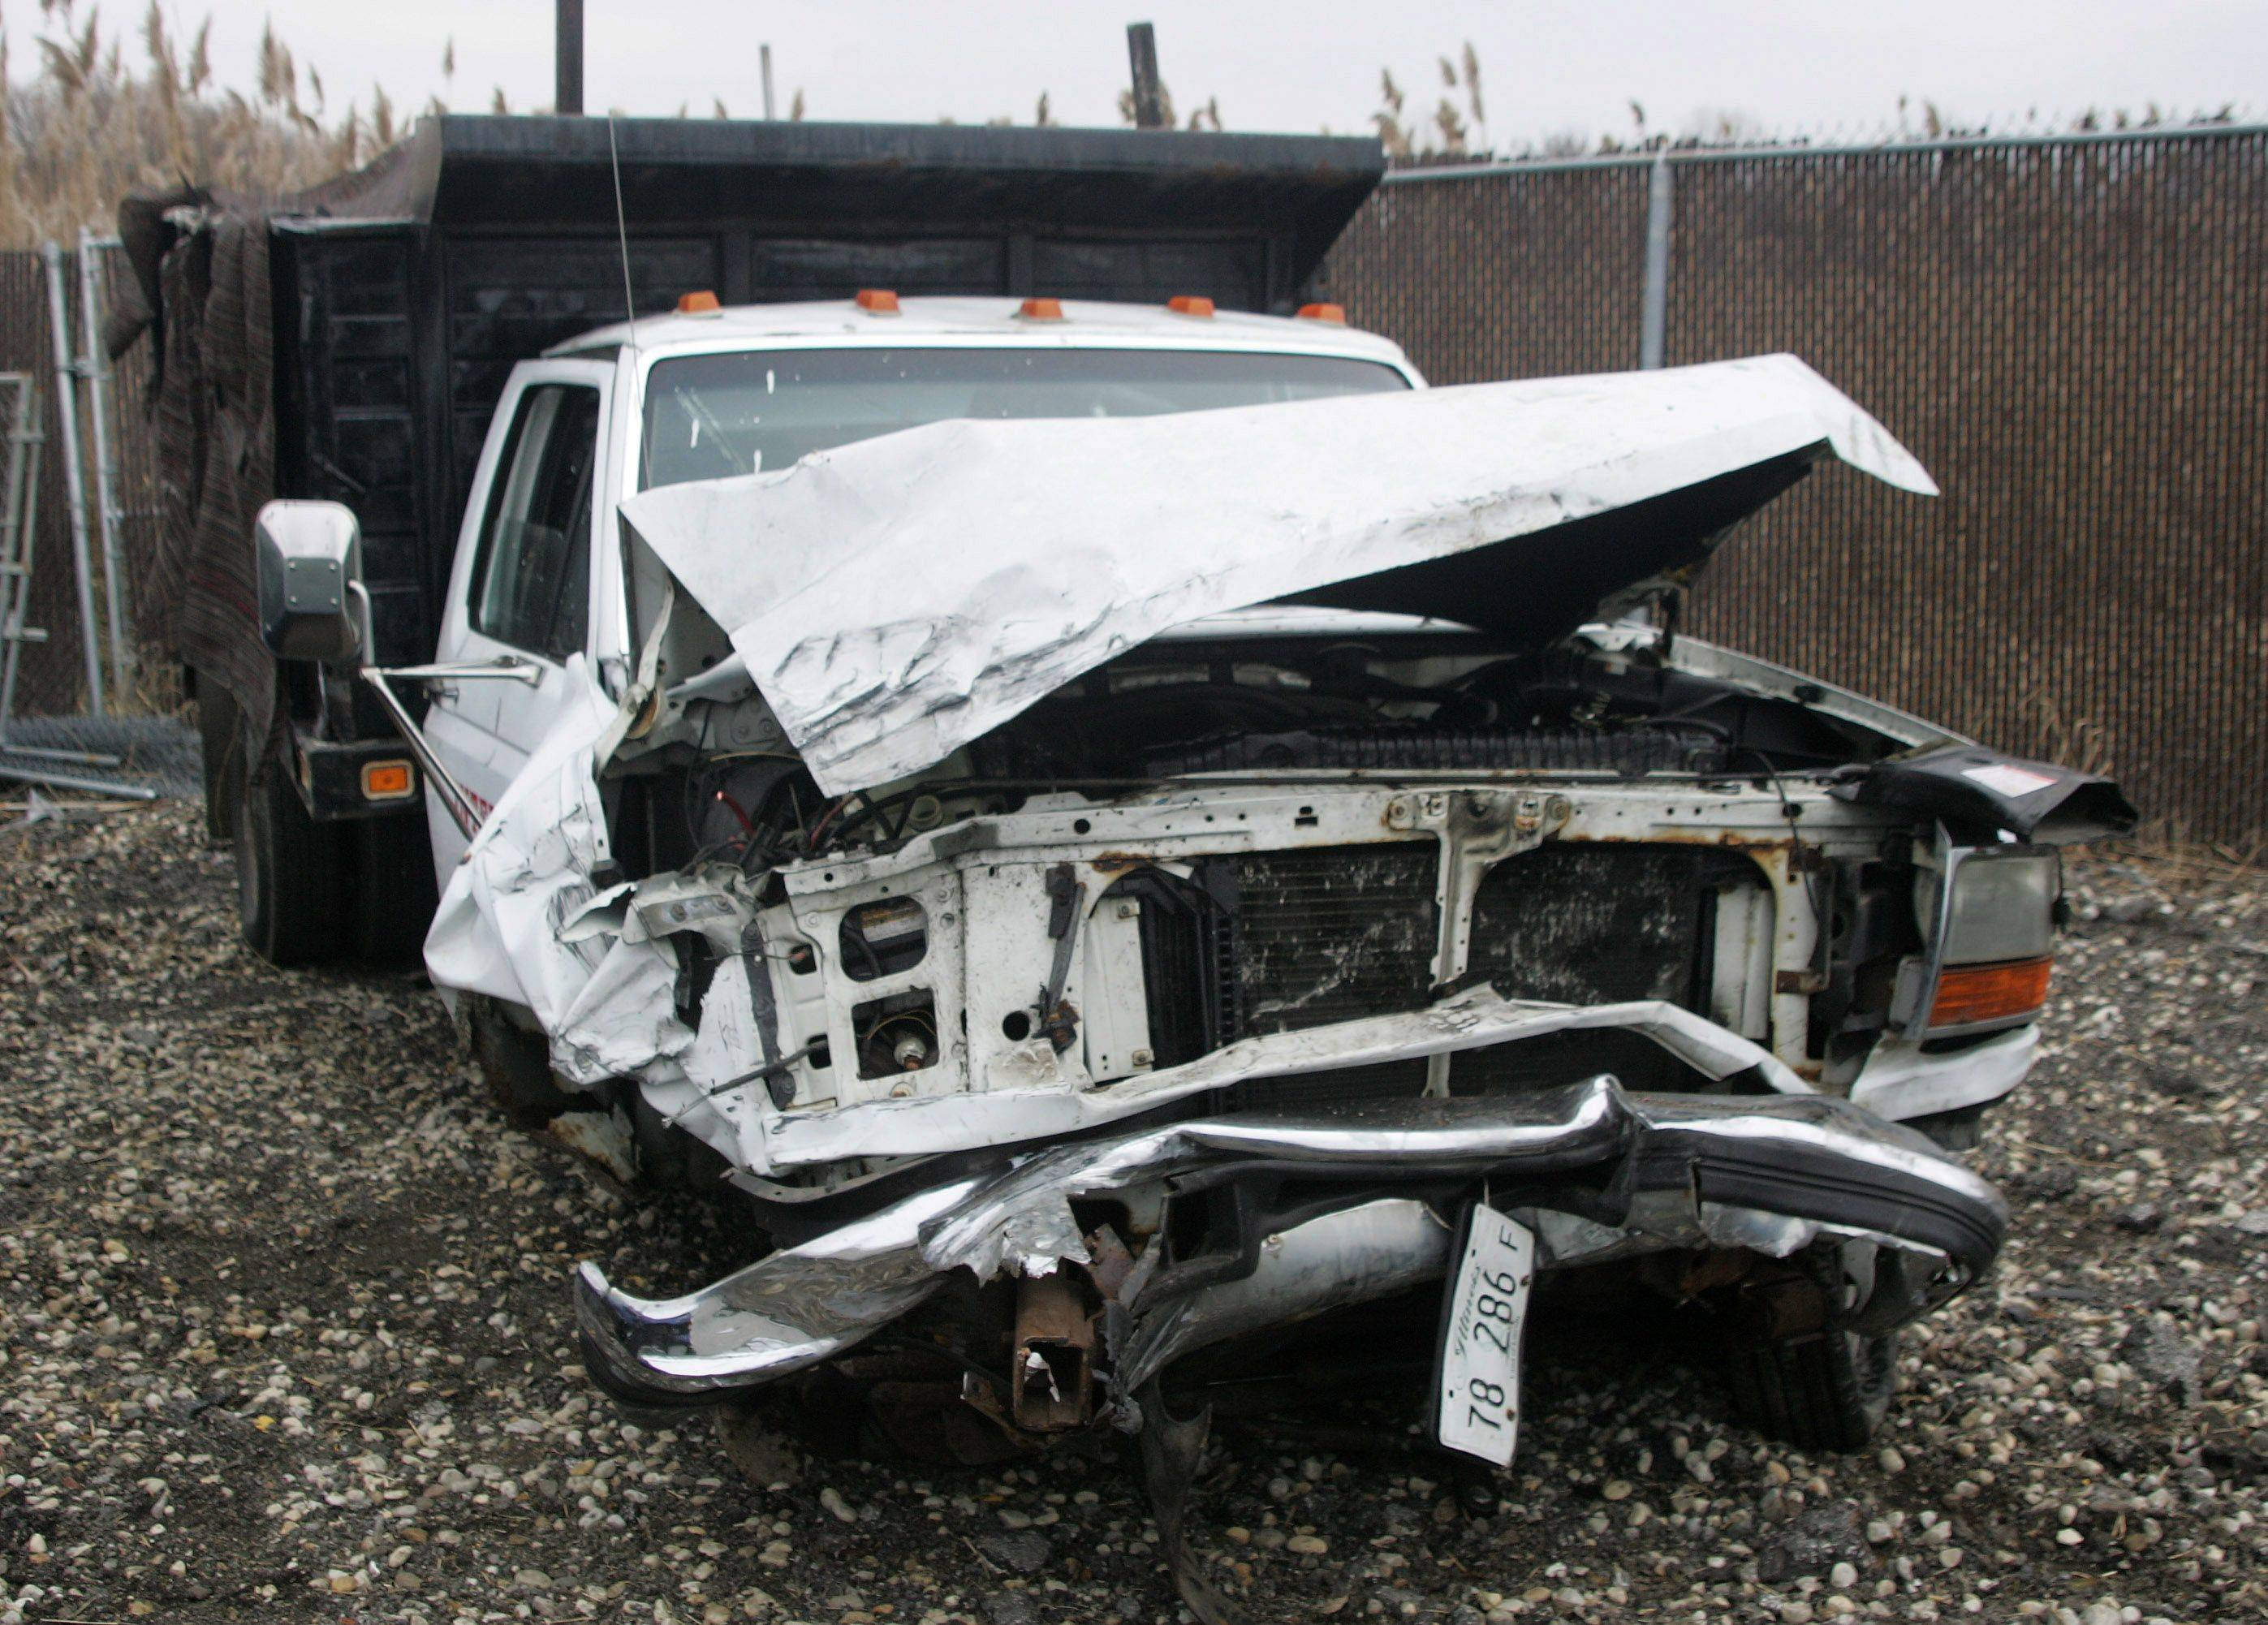 The truck that hit a Lincoln sedan in an accident at Route 12 and Old McHenry Road near Lake Zurich on Monday that resulted in the death of a 10-year-old Island Lake boy.